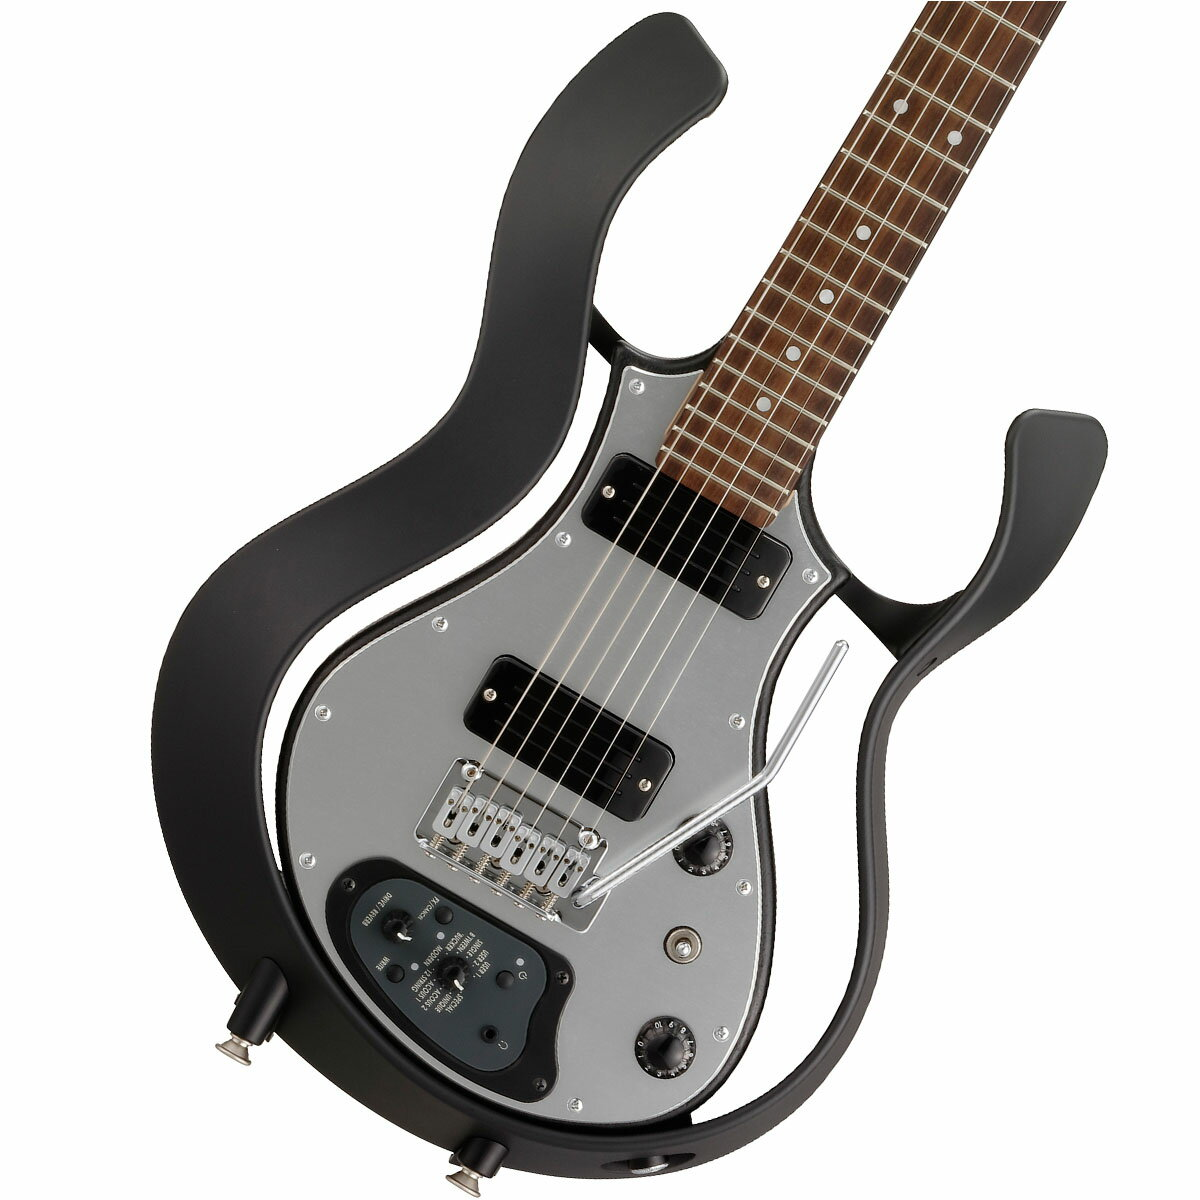 VOX / Modeling Electric Guitar Starstream Type 1-24 Black Frame with Black Body Metal Top (VSS-1-24BKBK-M)